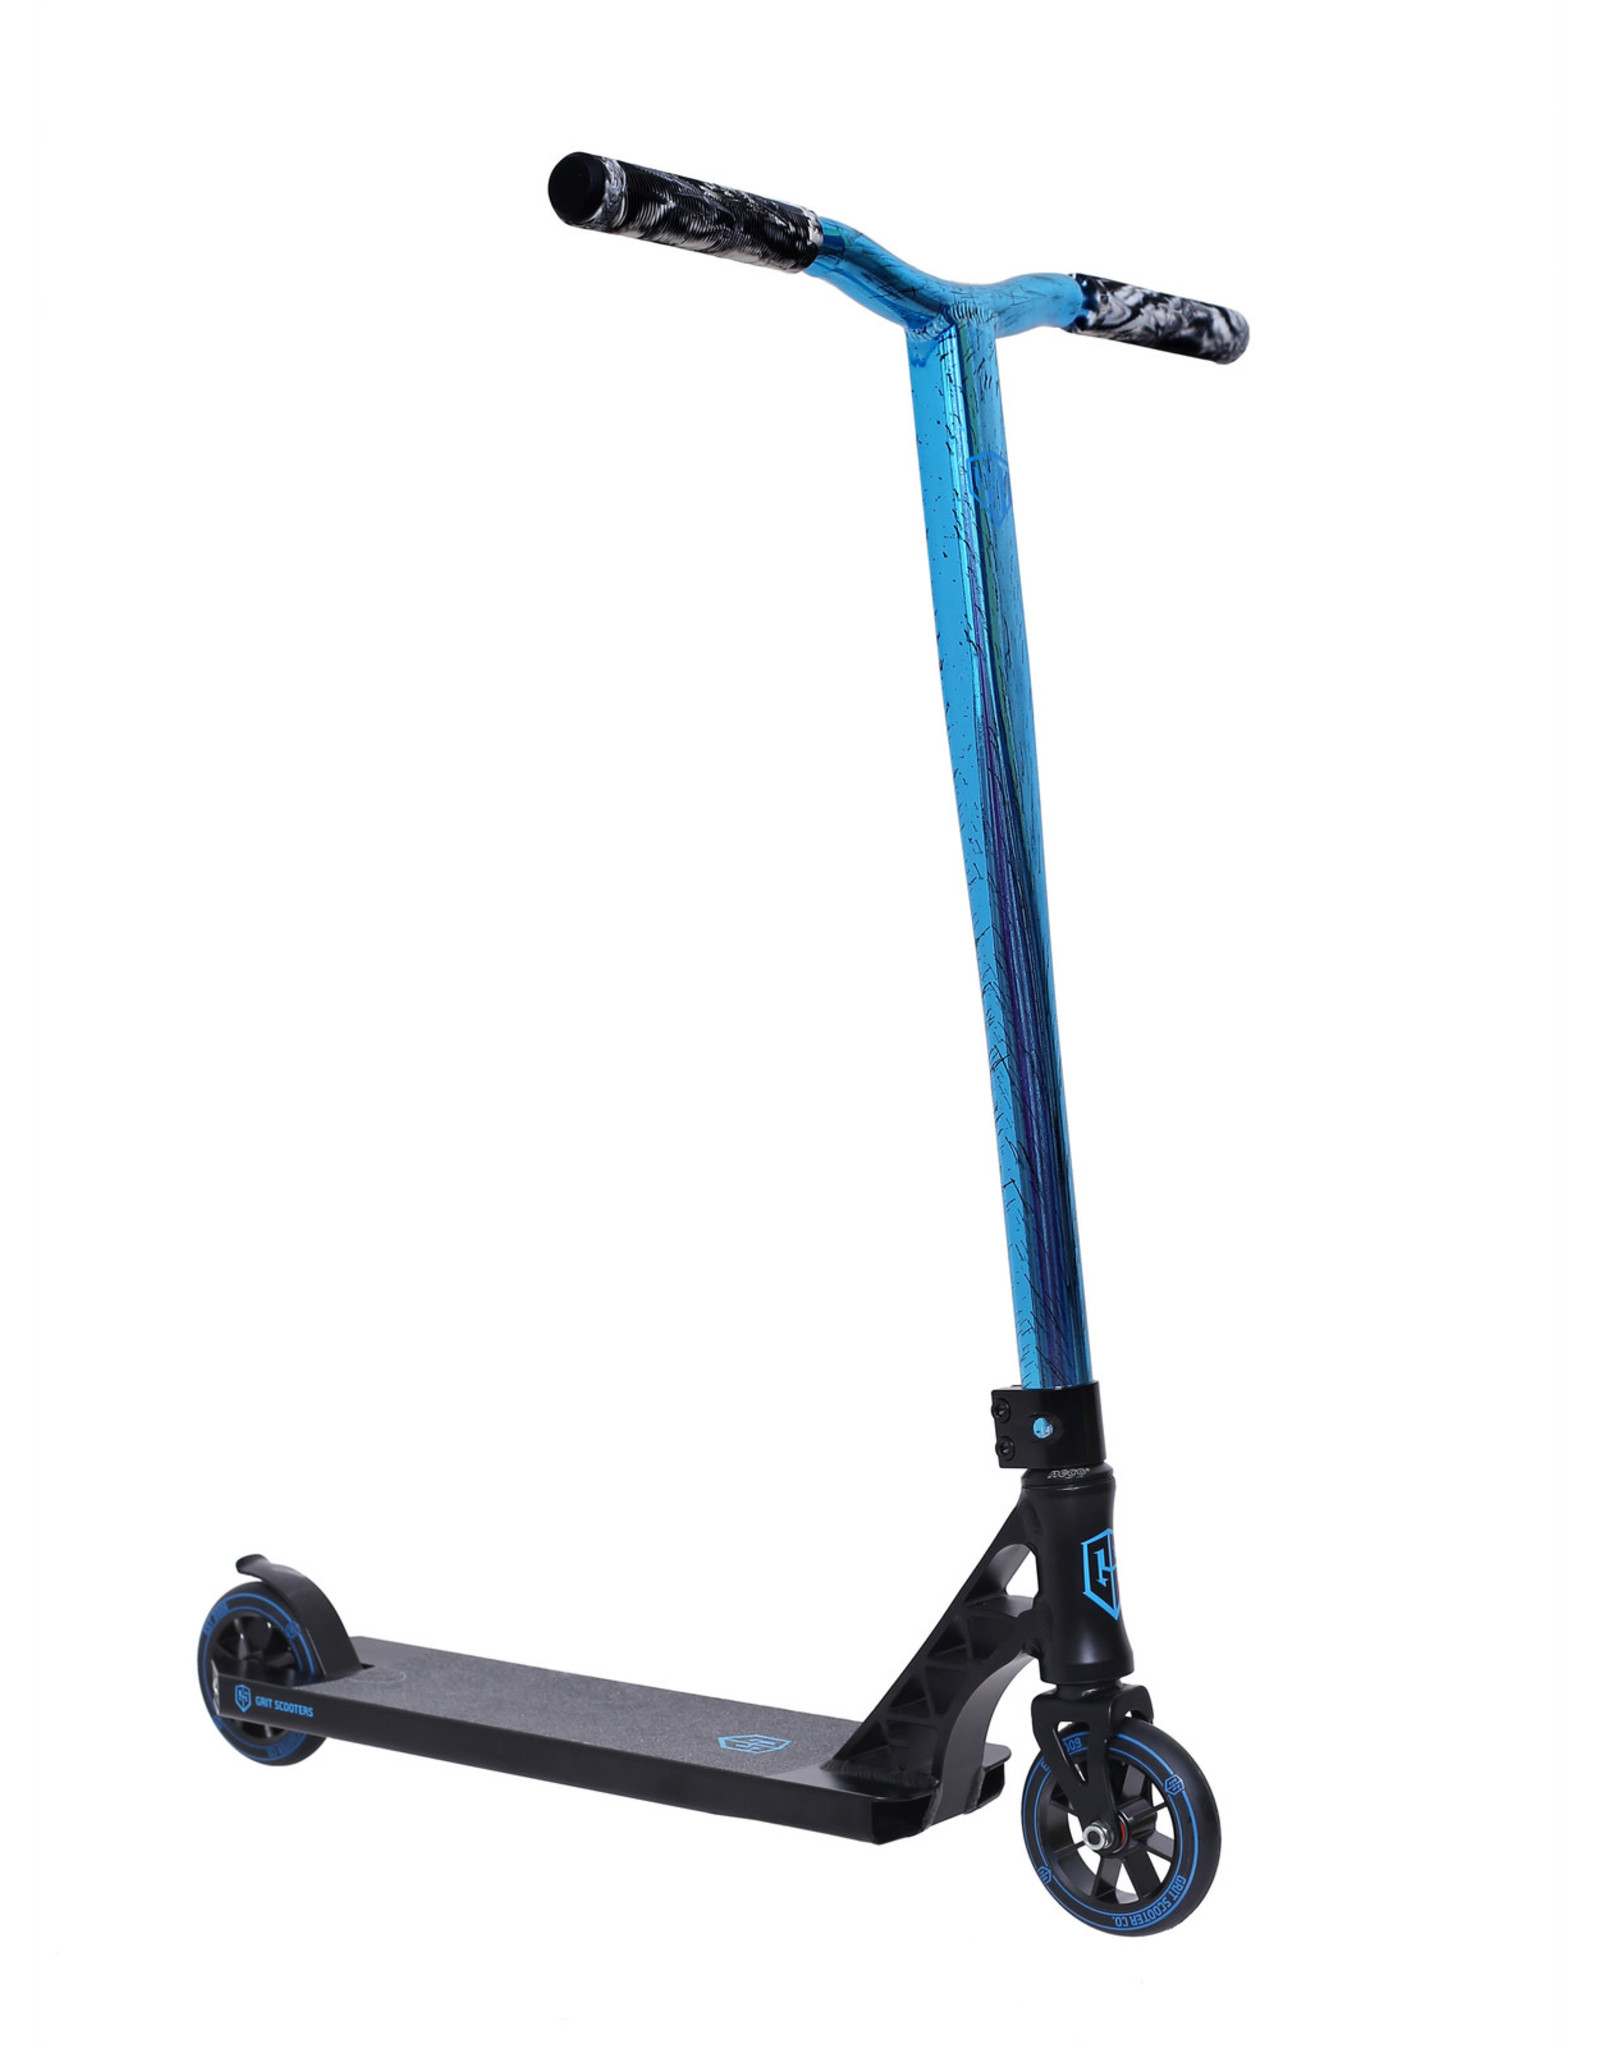 GRIT Grit Elite 2021 Black / Vapour Blue Black Laser Scooter